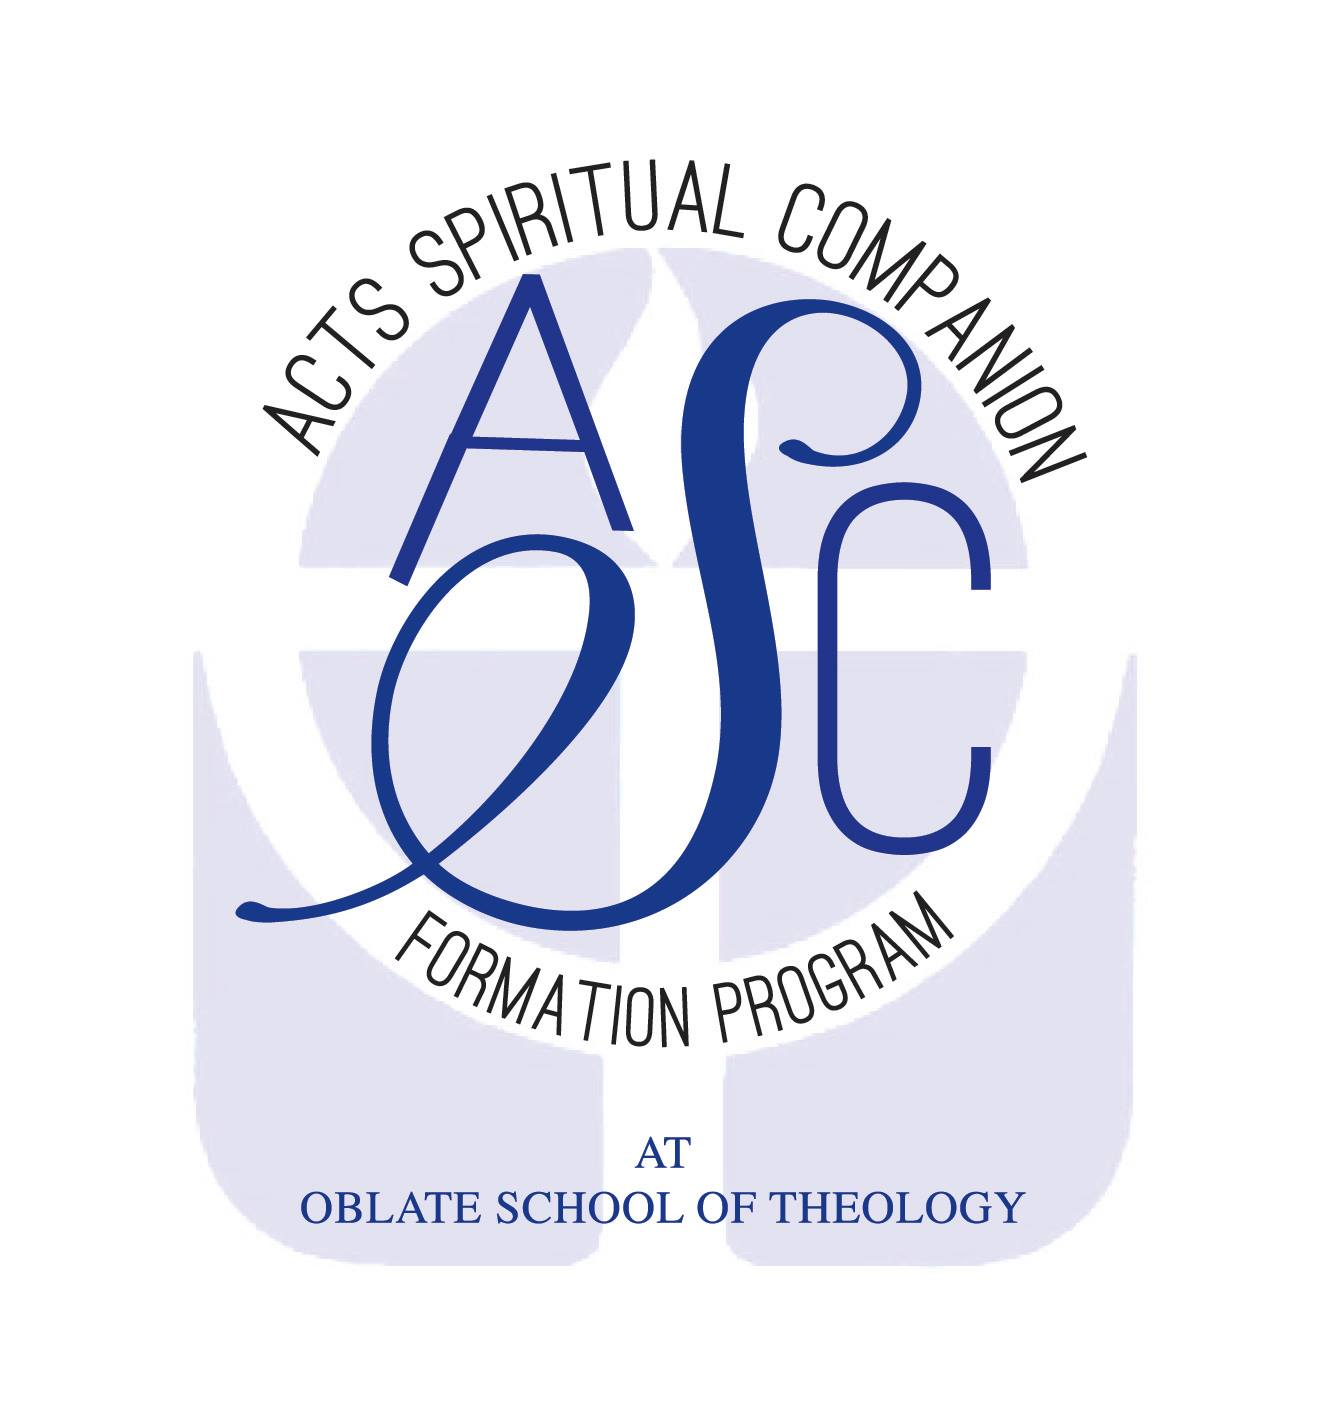 Oblate School of Theology has been in partnership with ACTS Missions, the  governing organization for ACTS retreats since 1999. In response to the  demands of ...